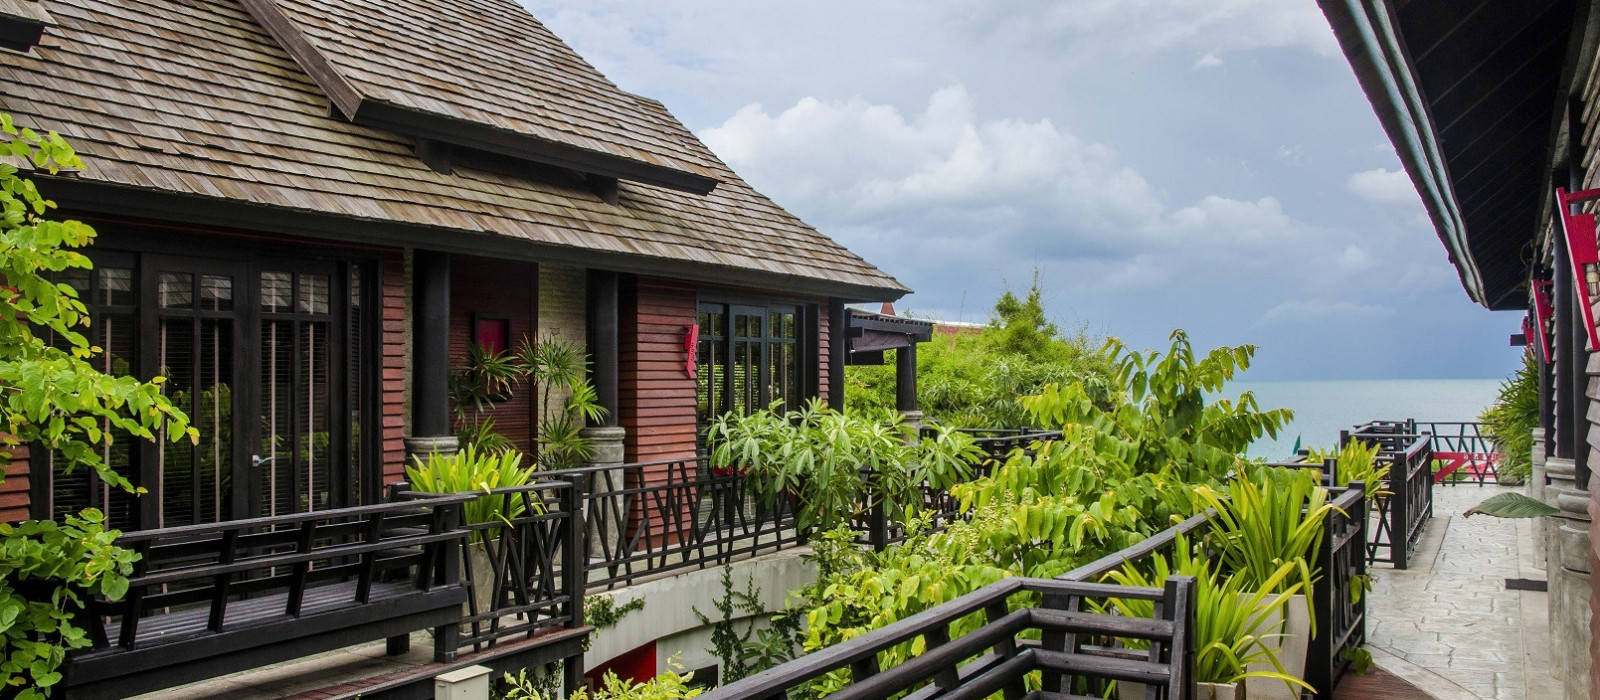 Hotel Kirikayan Boutique Resort Thailand